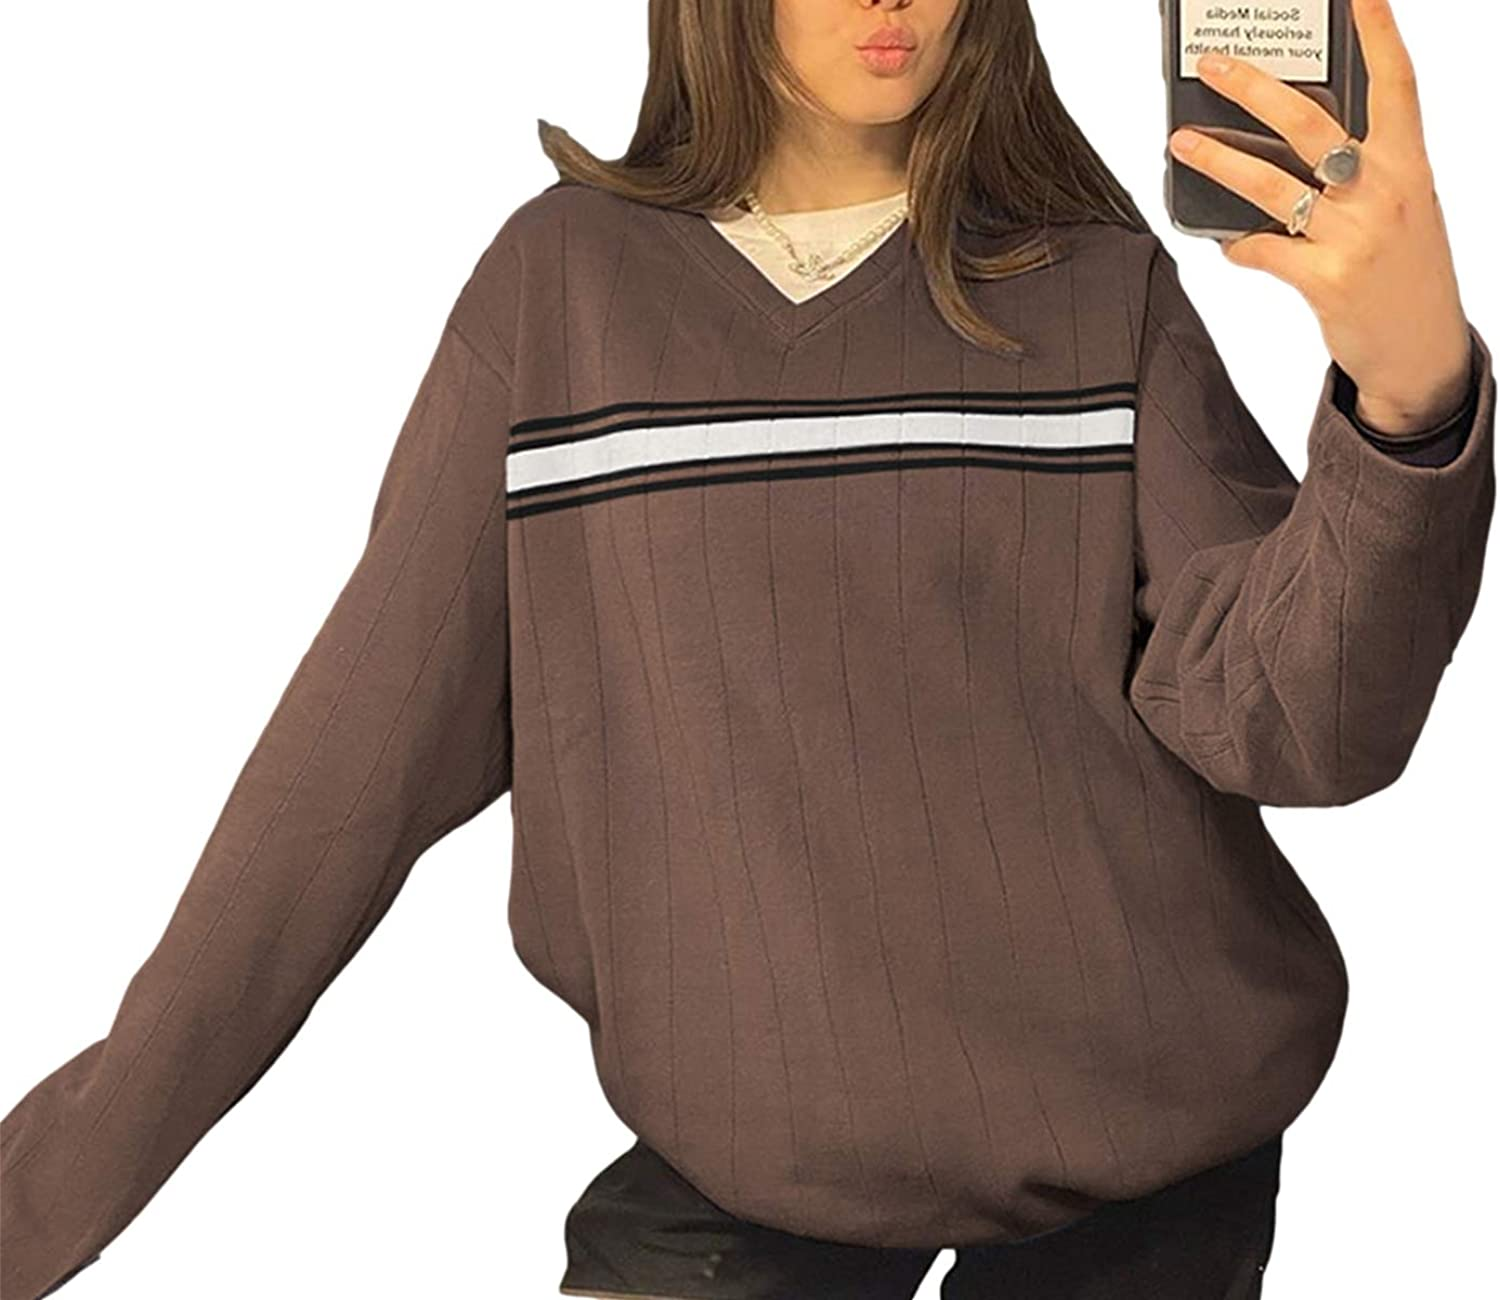 BZB Striped V Neck Oversized Sweater for Women Casual Loose Y2K Knitted Preppy Style Vintage E Girl Pullover Sweater Tops